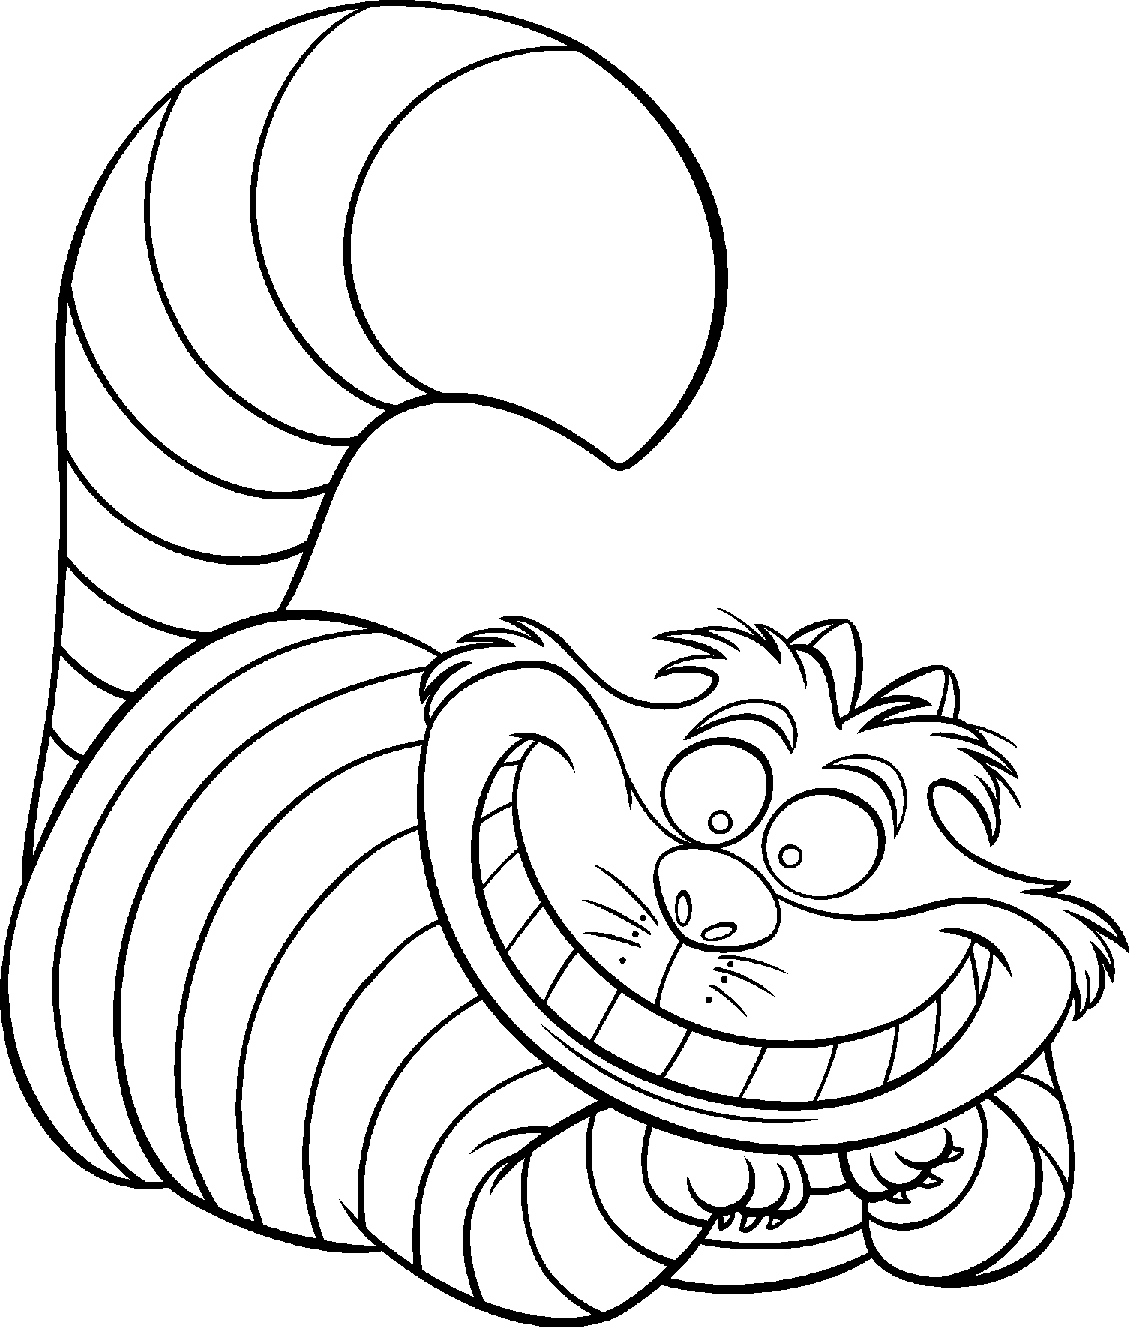 funny coloring pages images - Cartoon Coloring Pages Printables